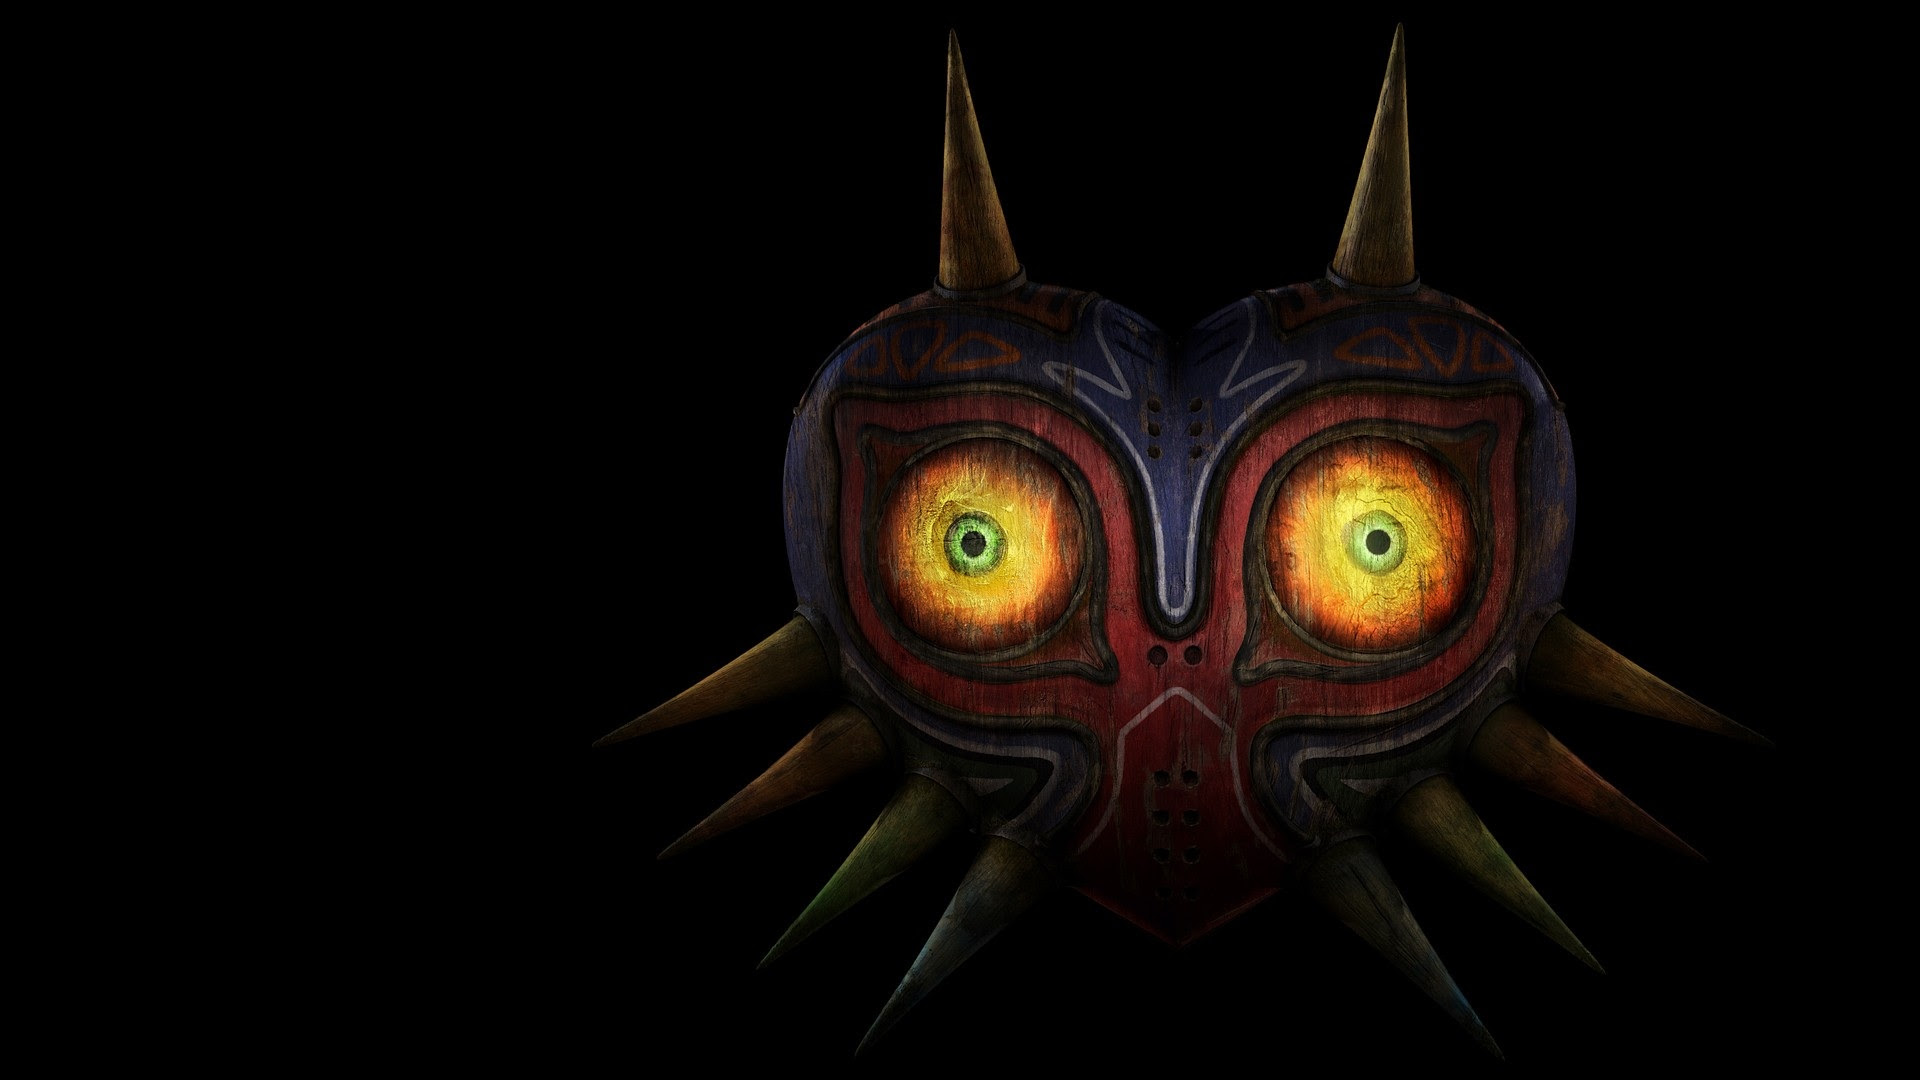 1920x1080 The Legend Of Zelda Mask Desktop Pc And Mac Wallpaper